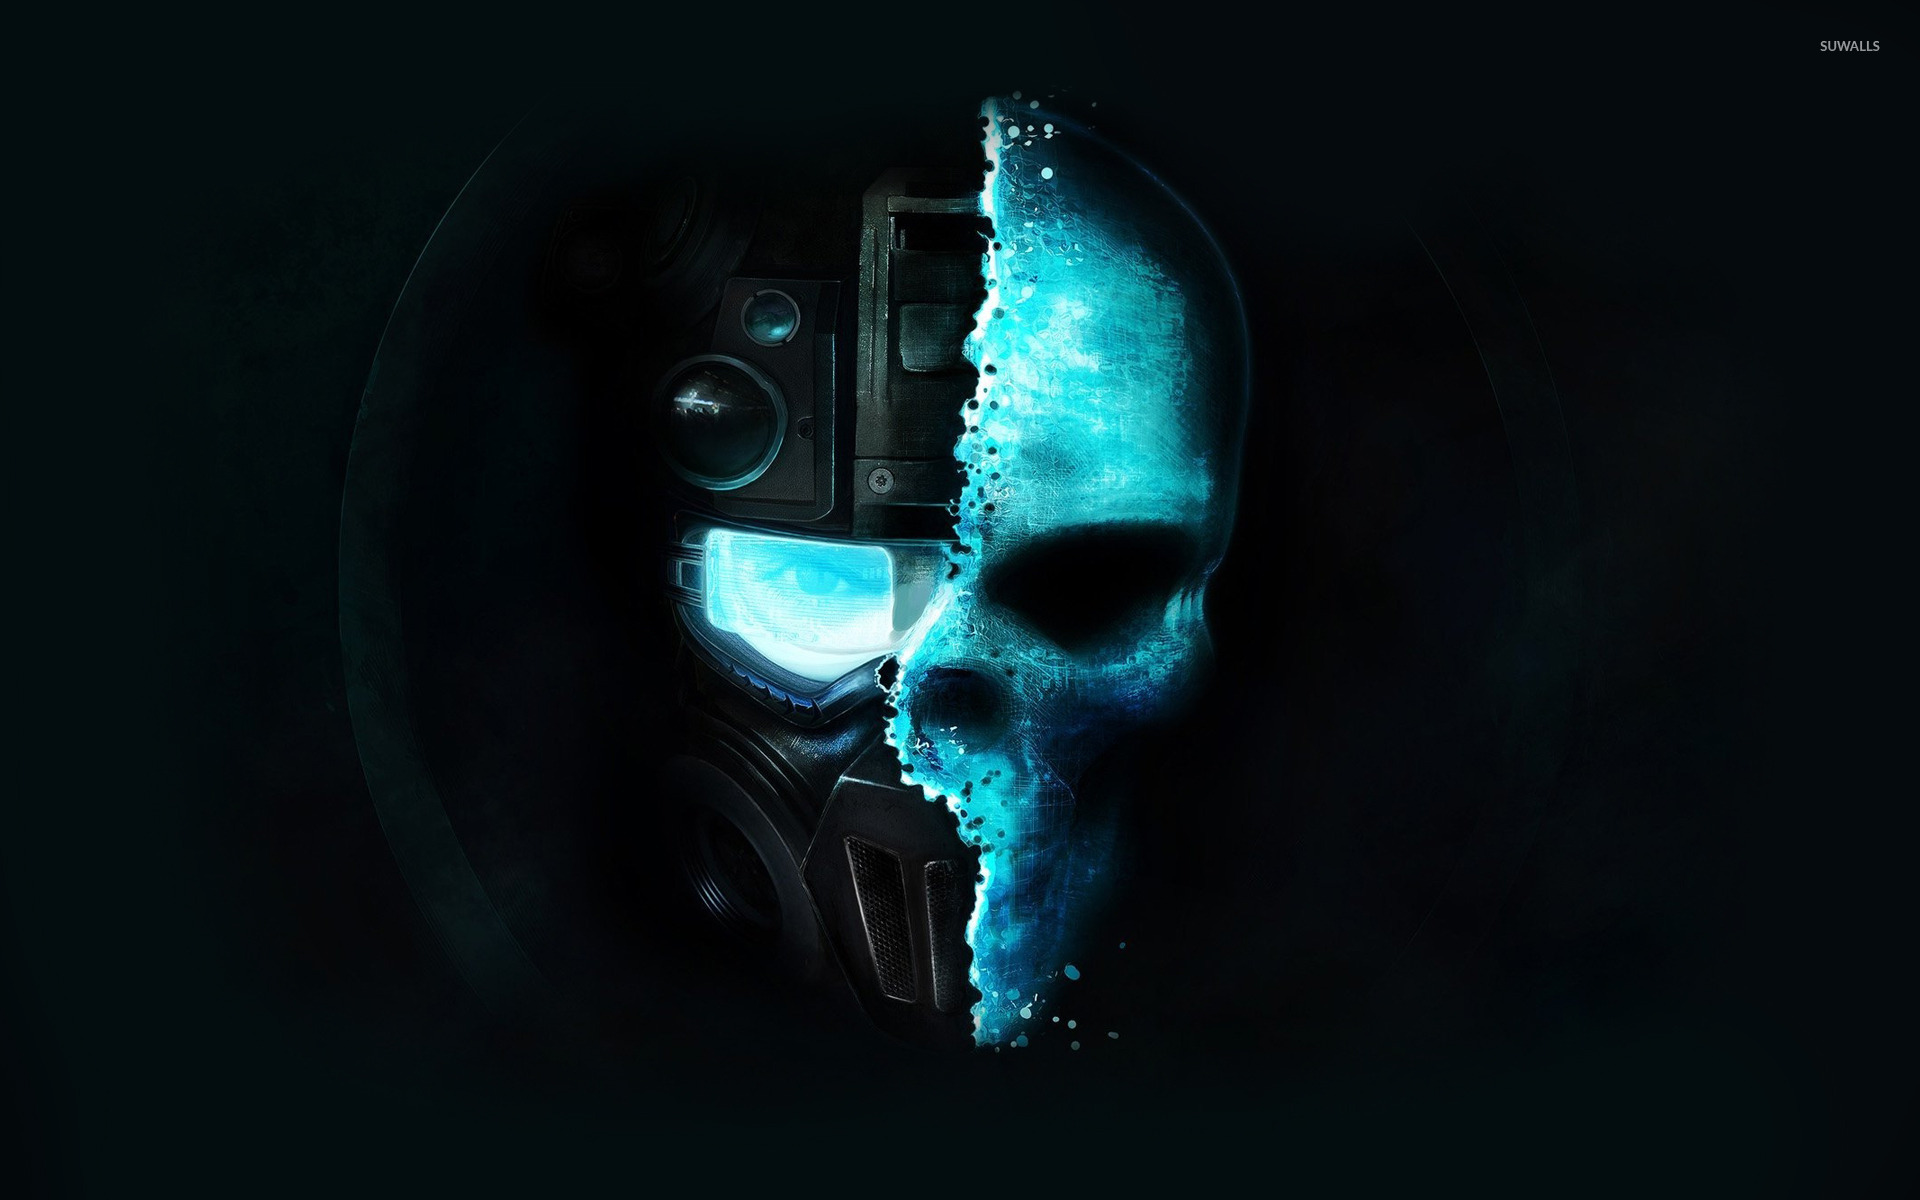 Tom Clancys Ghost Recon 2 Wallpaper